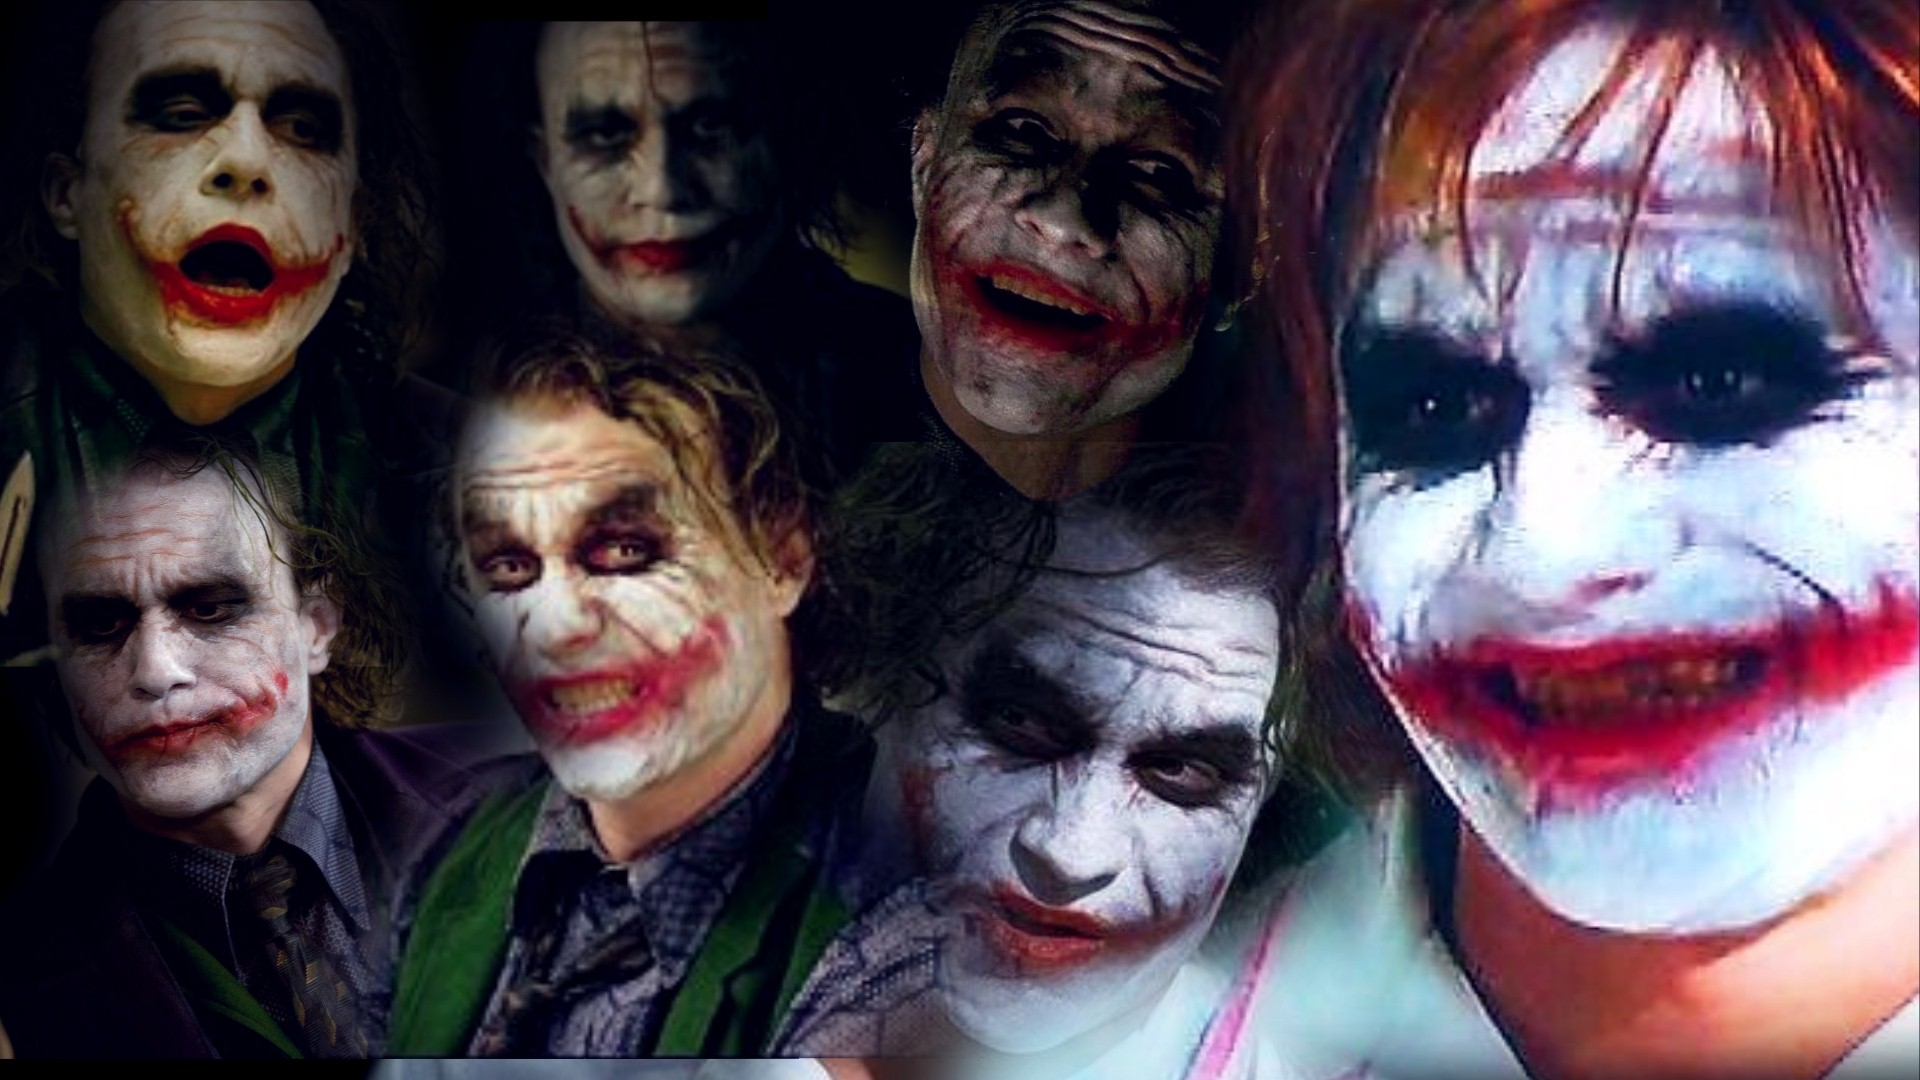 Coleccion The Joker (El guason - Heath Ledger)